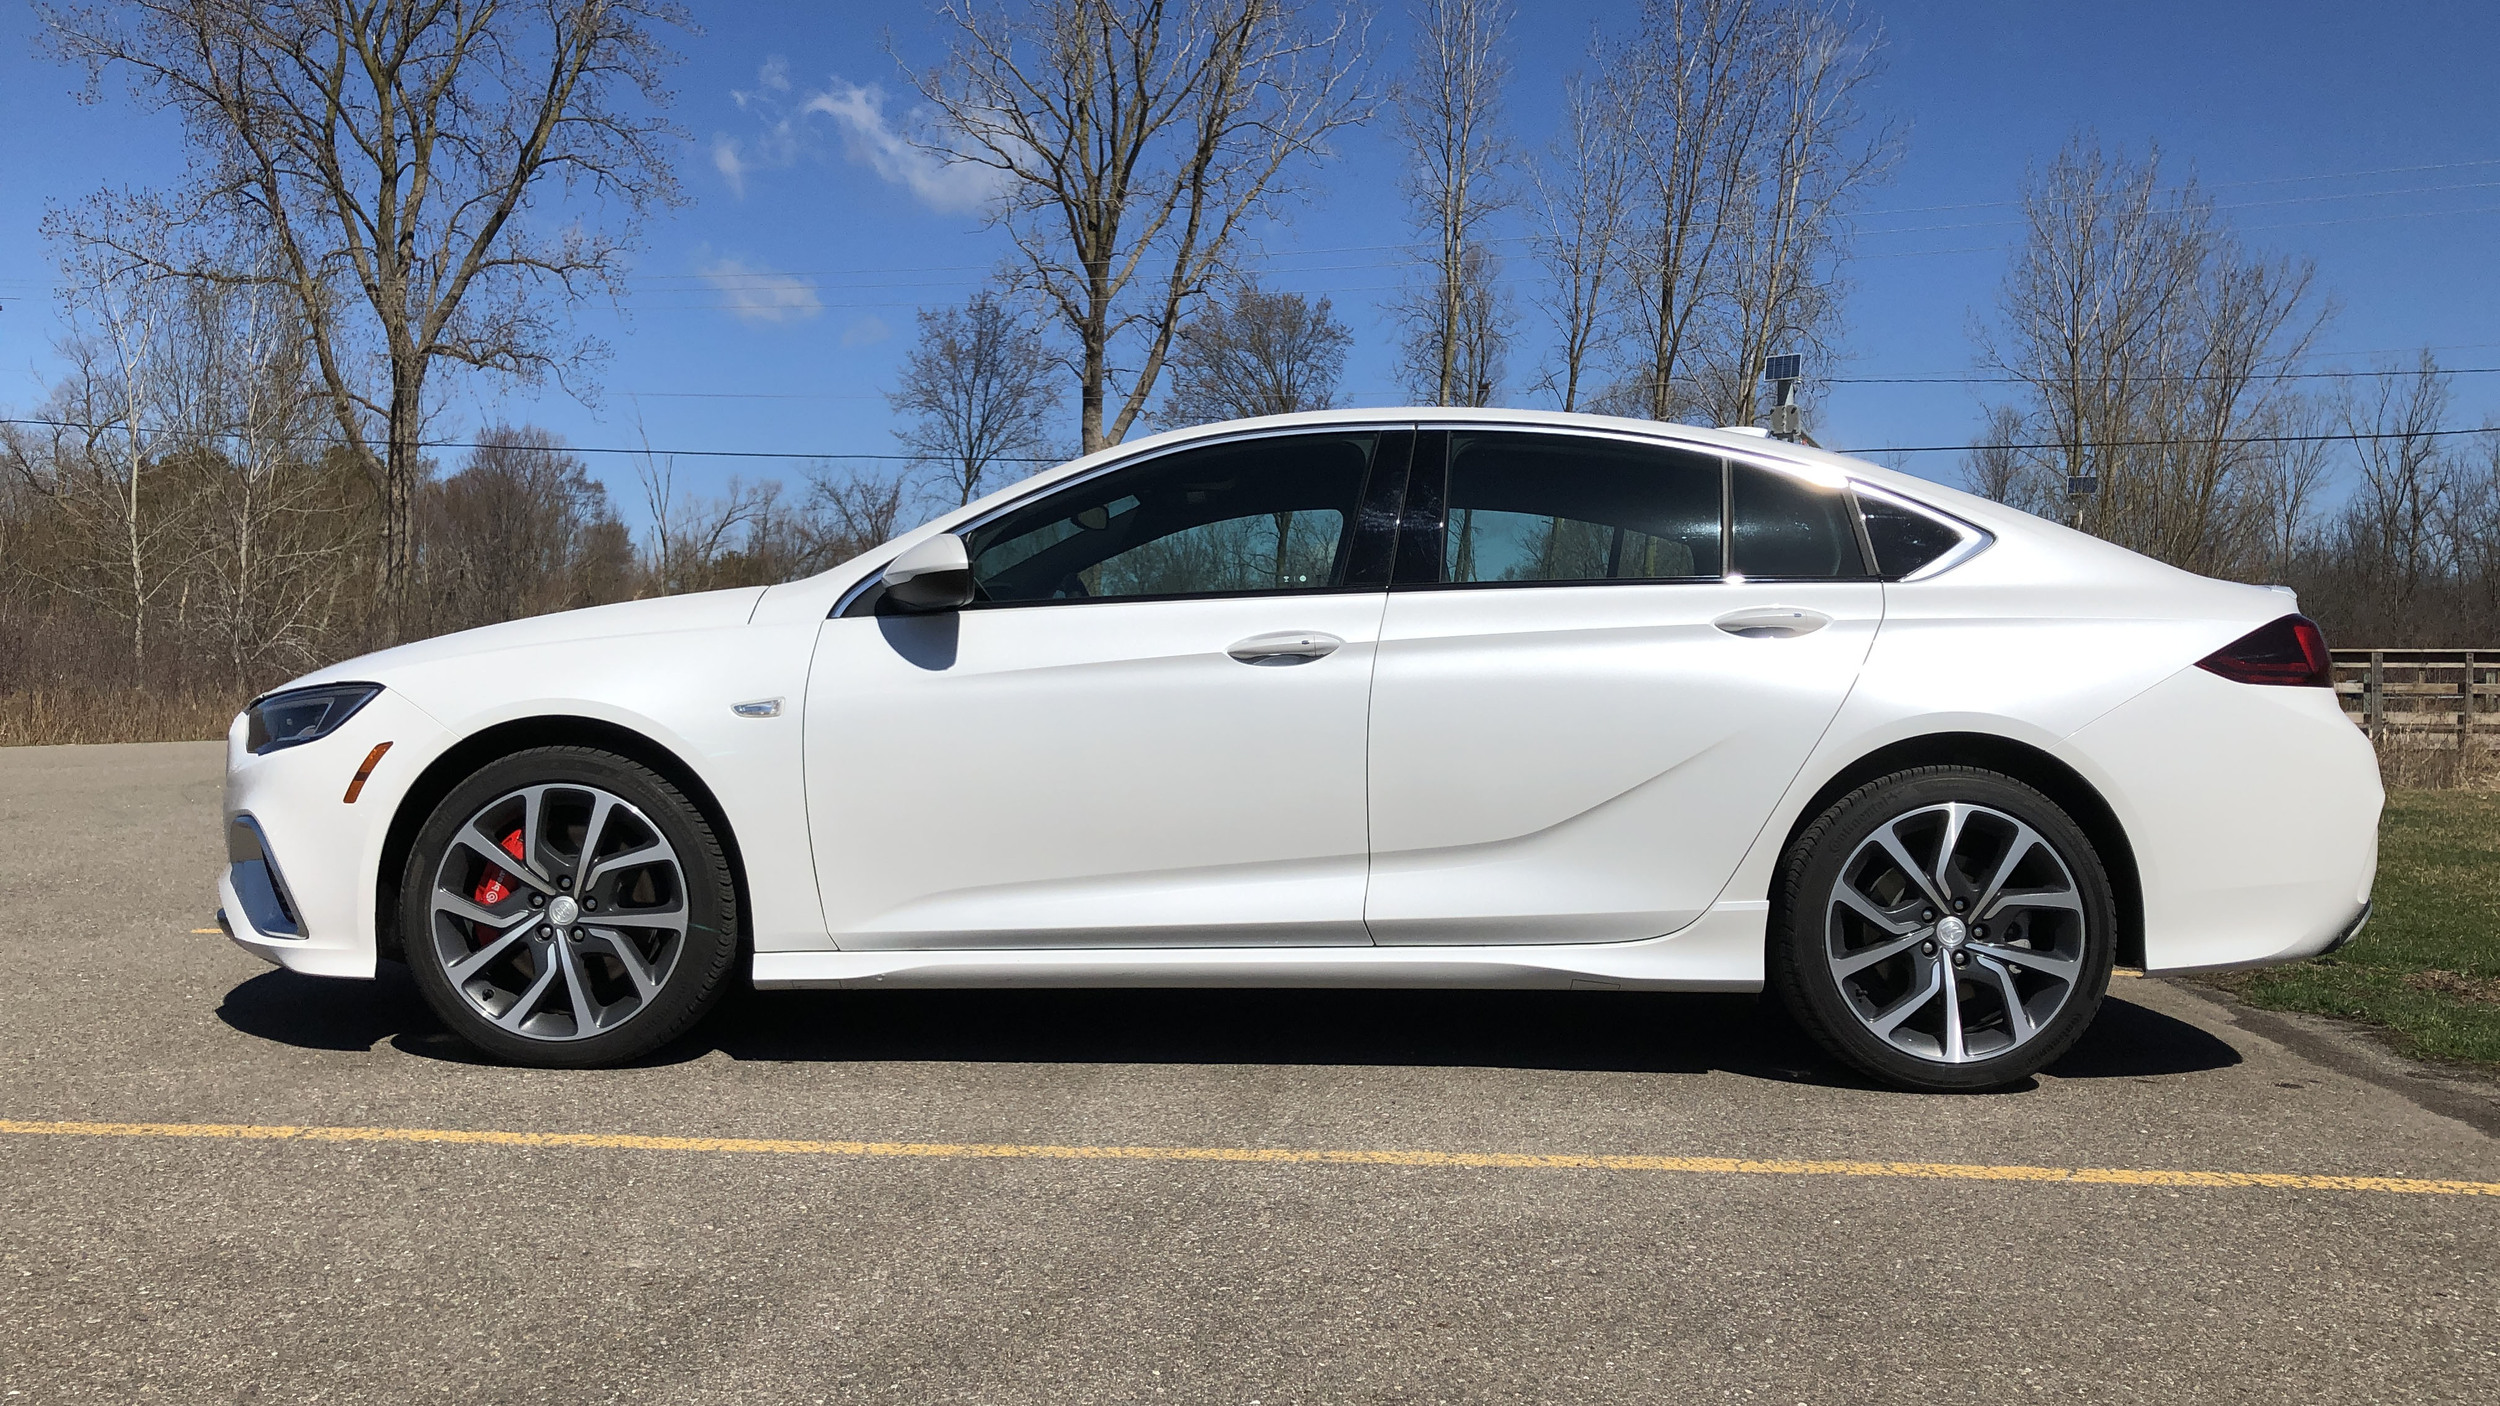 2019 Buick Regal GS review | Performance, handling and ...